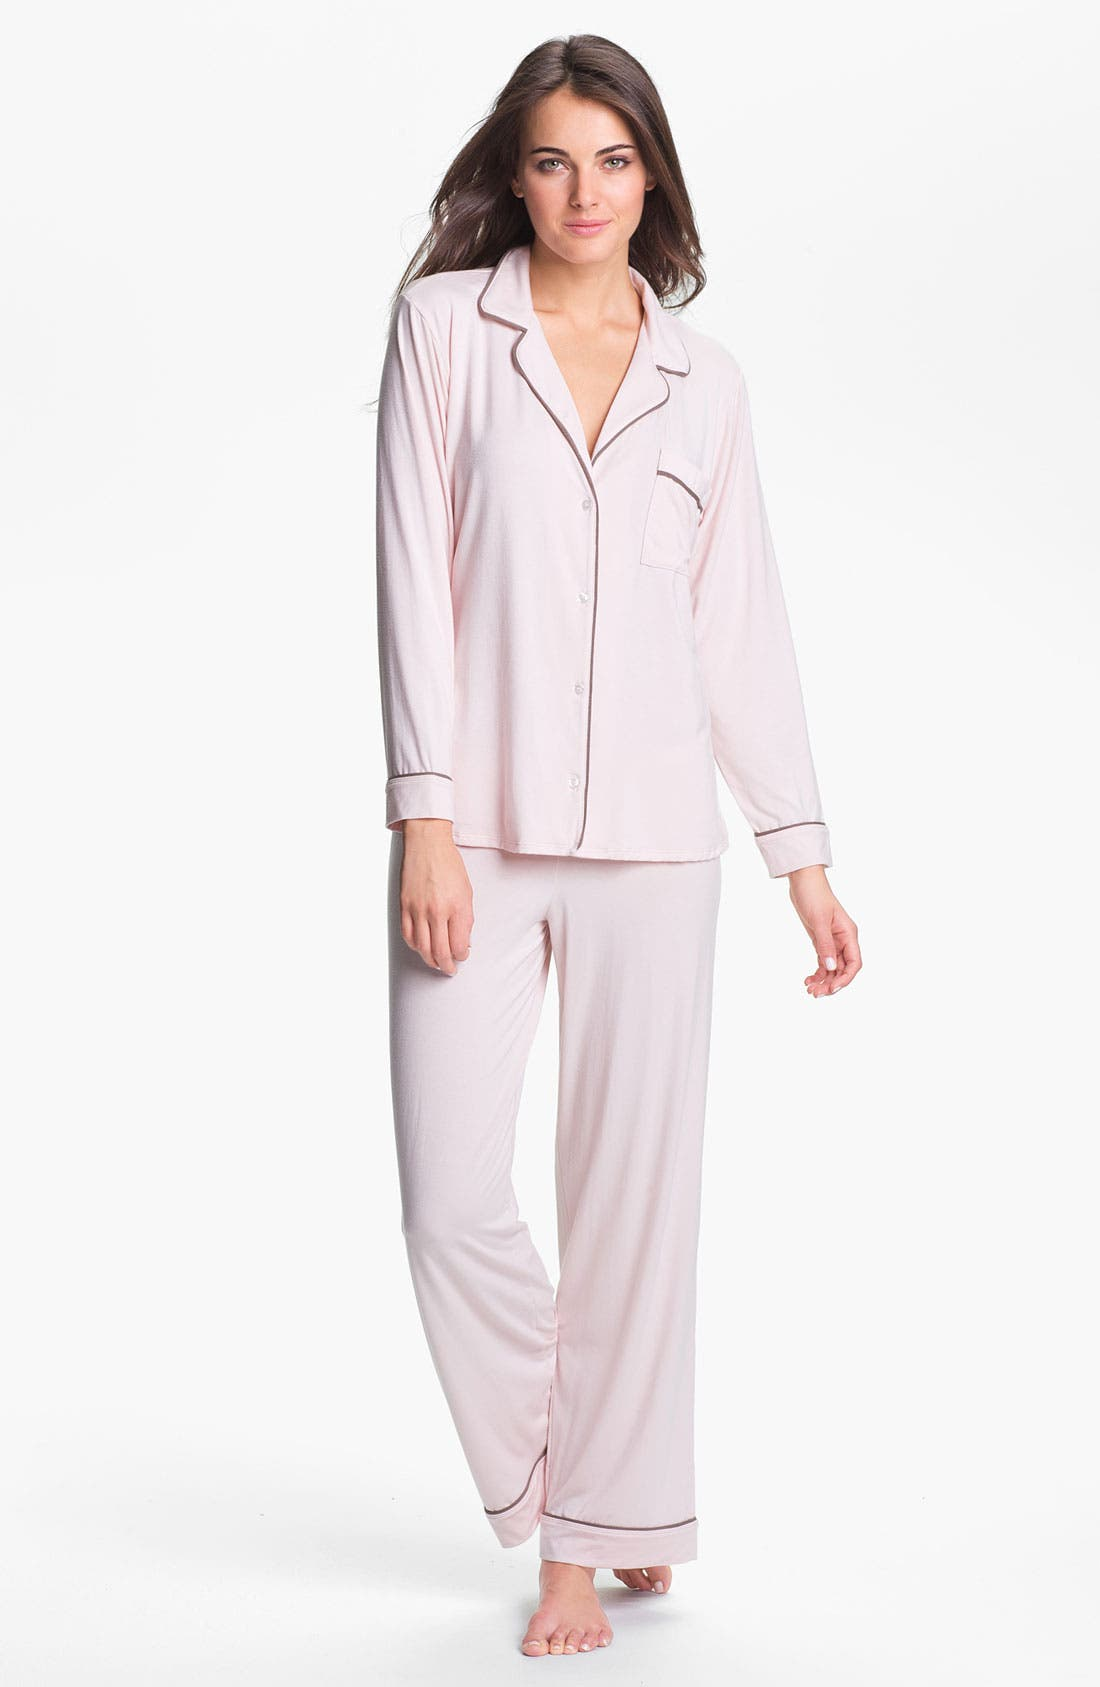 'Giselle' Pajamas,                             Main thumbnail 1, color,                             Sorbet Pink/ Pebble